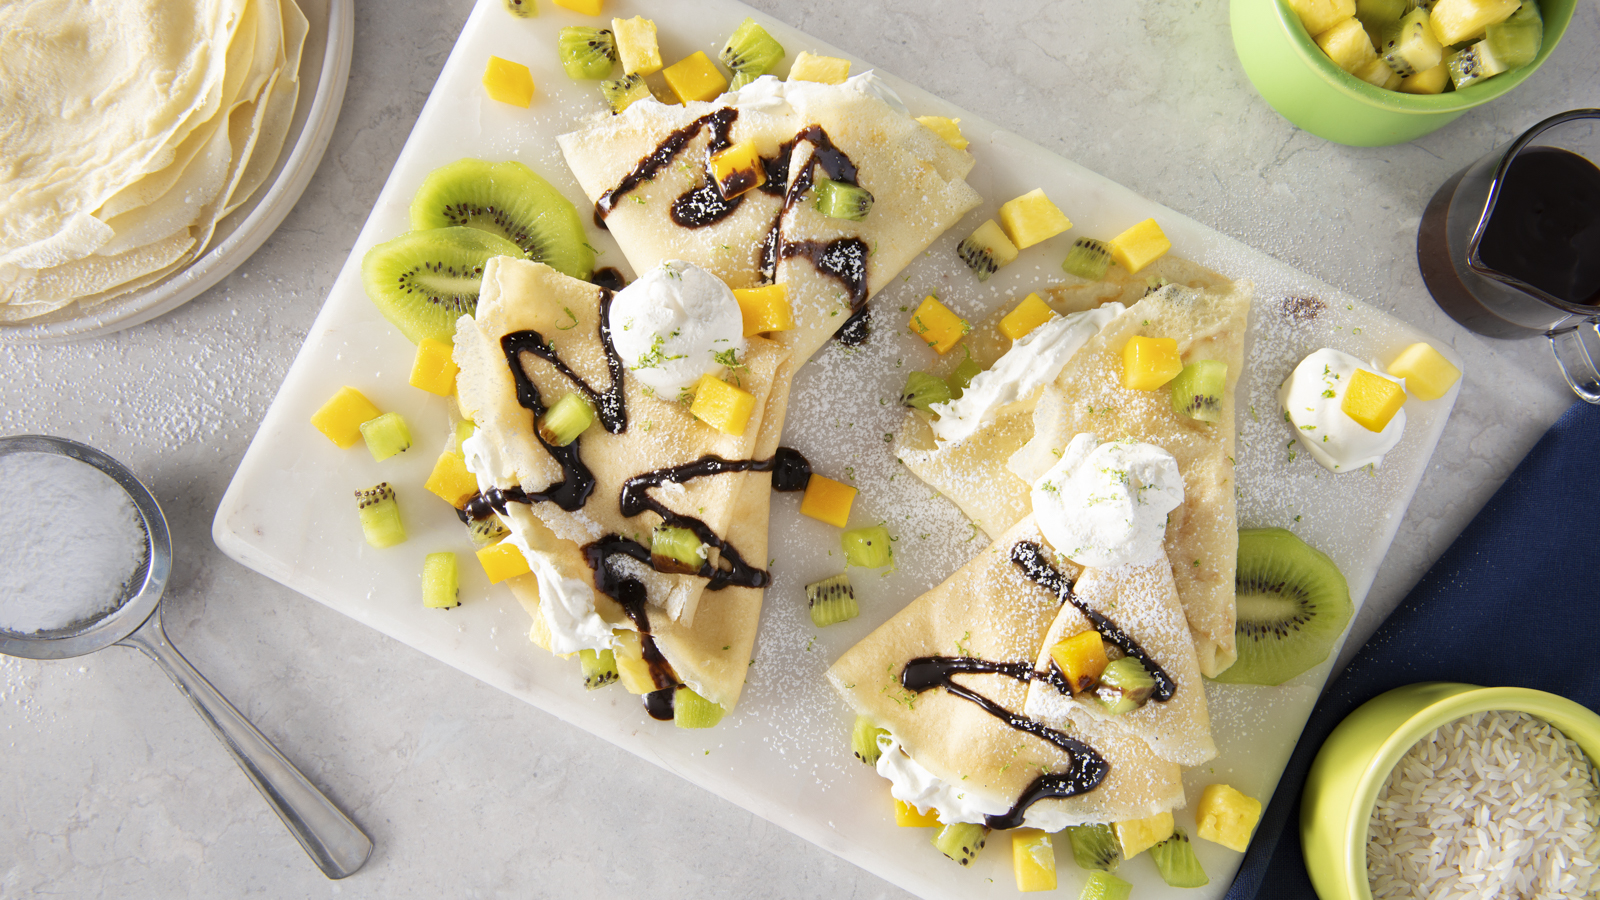 Street Fair Rice Crepes with Tropical Fruit